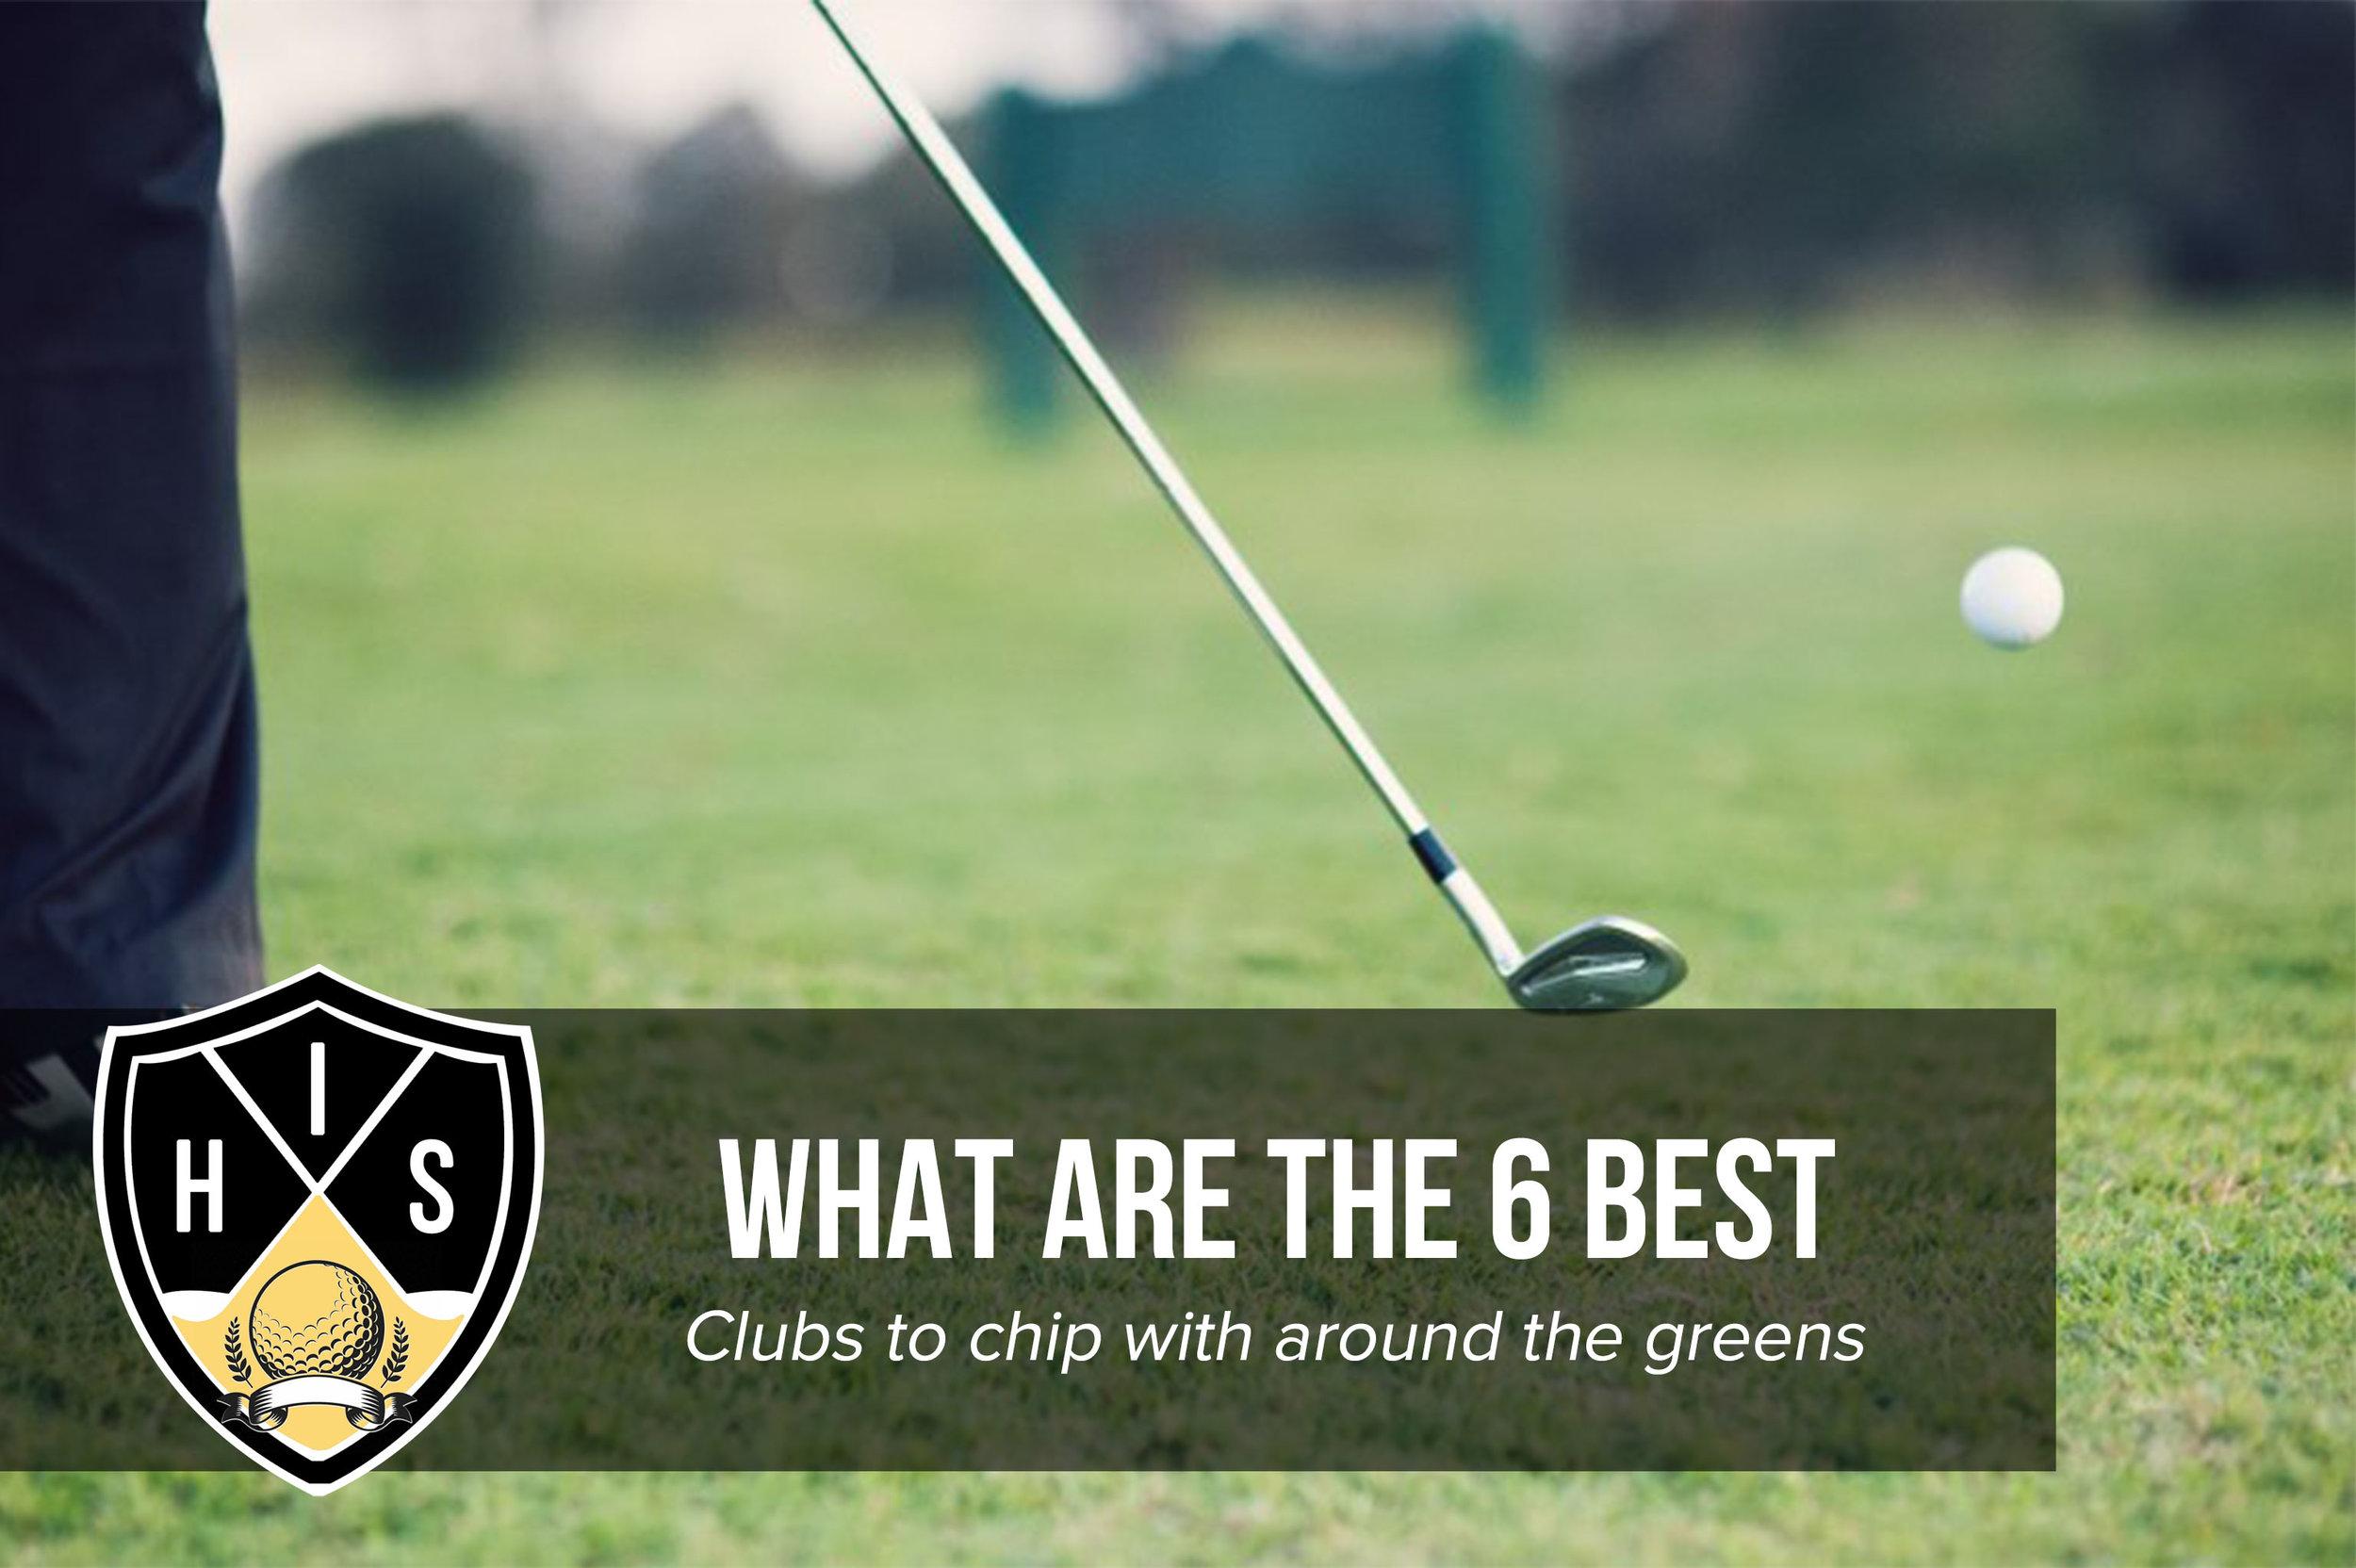 Best Clubs To Chip With Around The Greens